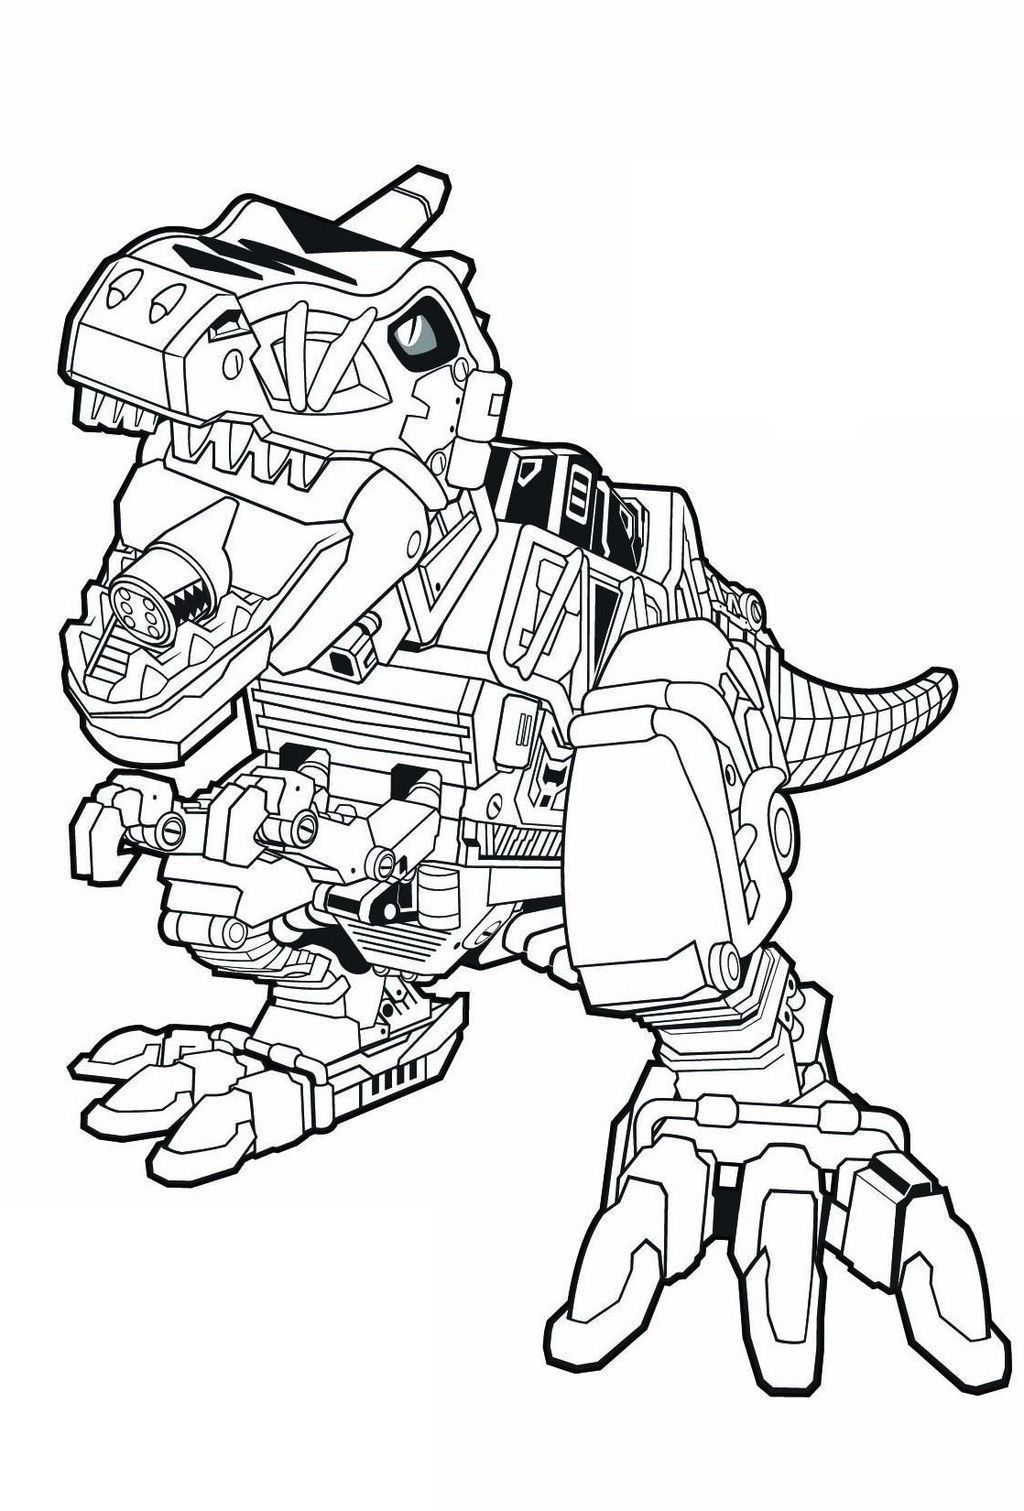 Power Rangers Colorear Coloring pages, Power rangers